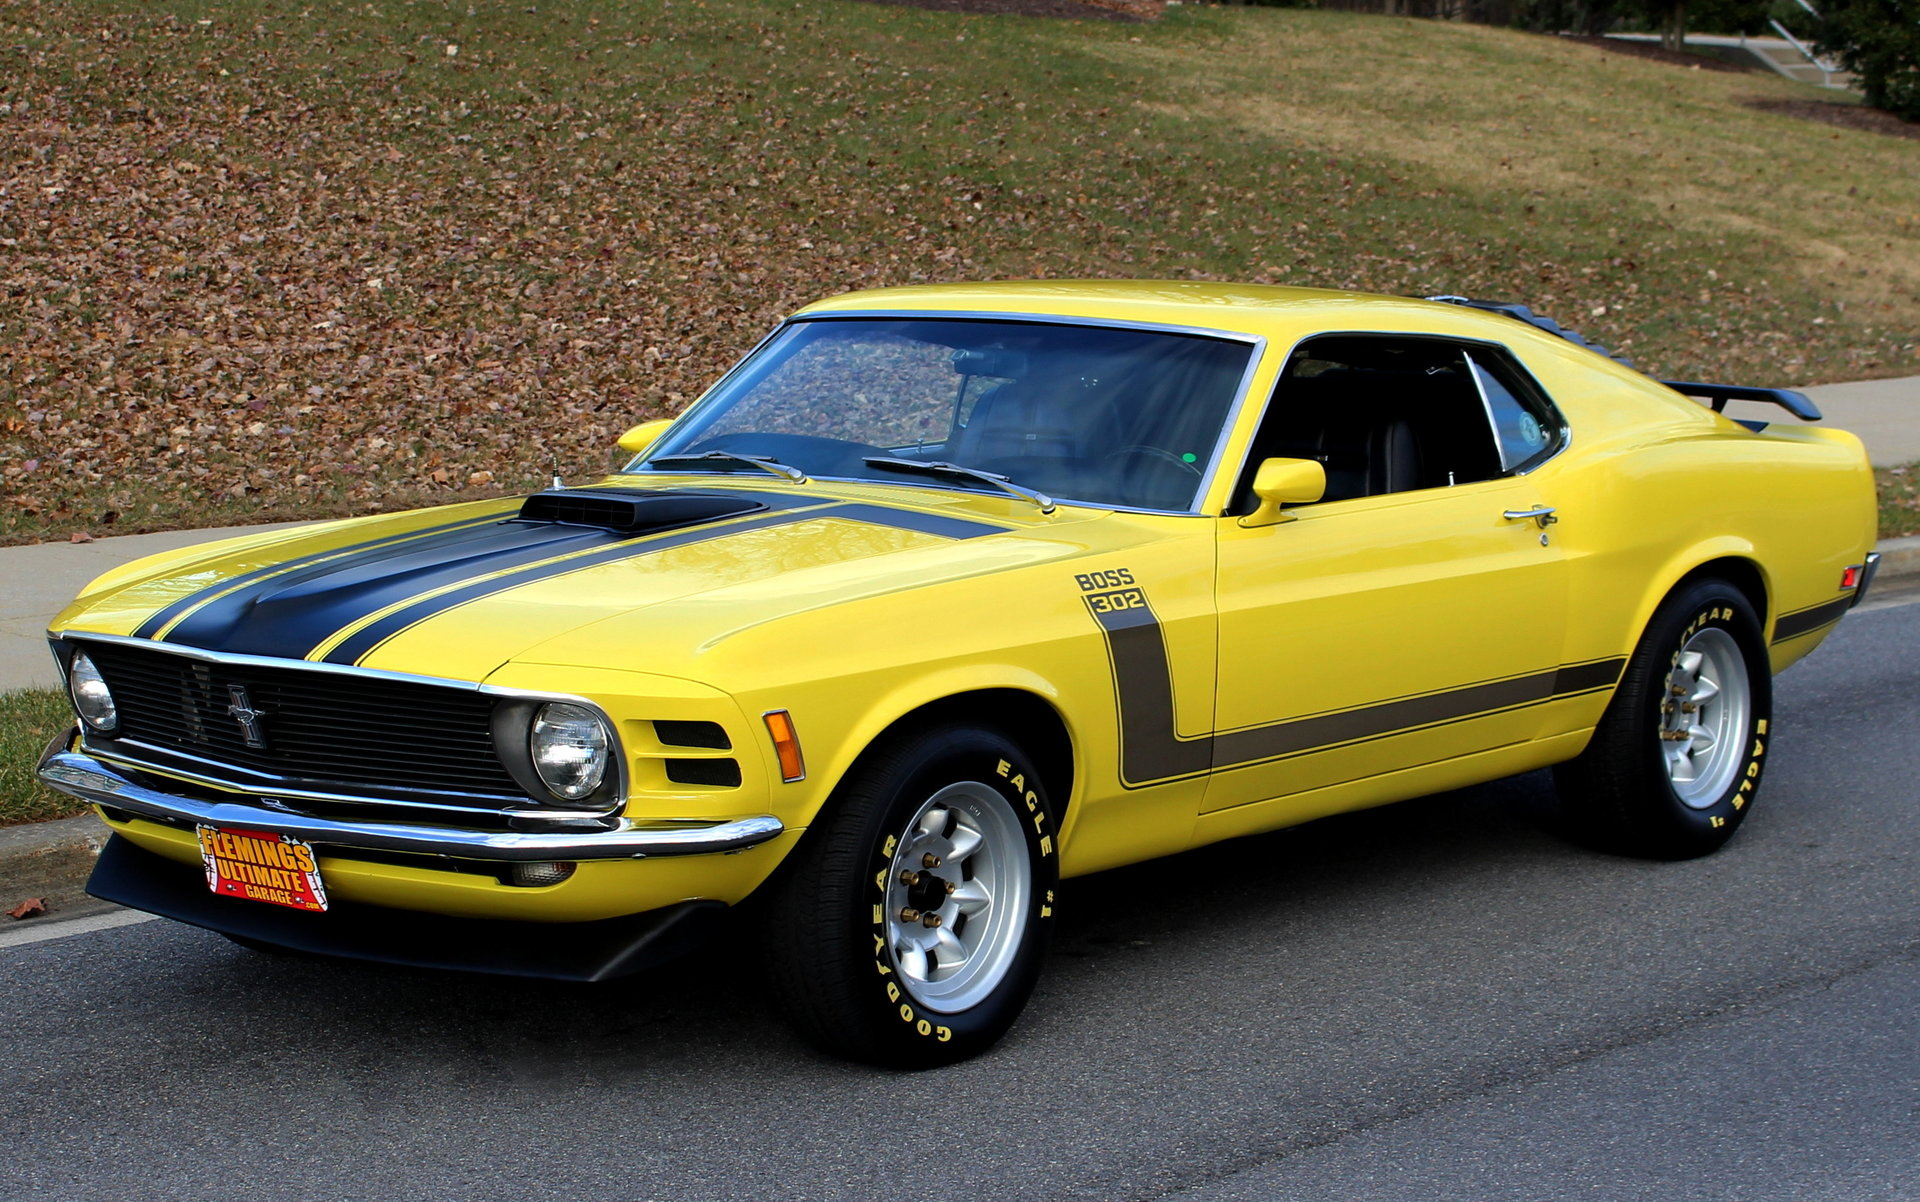 1970 ford mustang boss 302 1970 ford mustang boss 302 for sale to buy or purchase real shaker. Black Bedroom Furniture Sets. Home Design Ideas